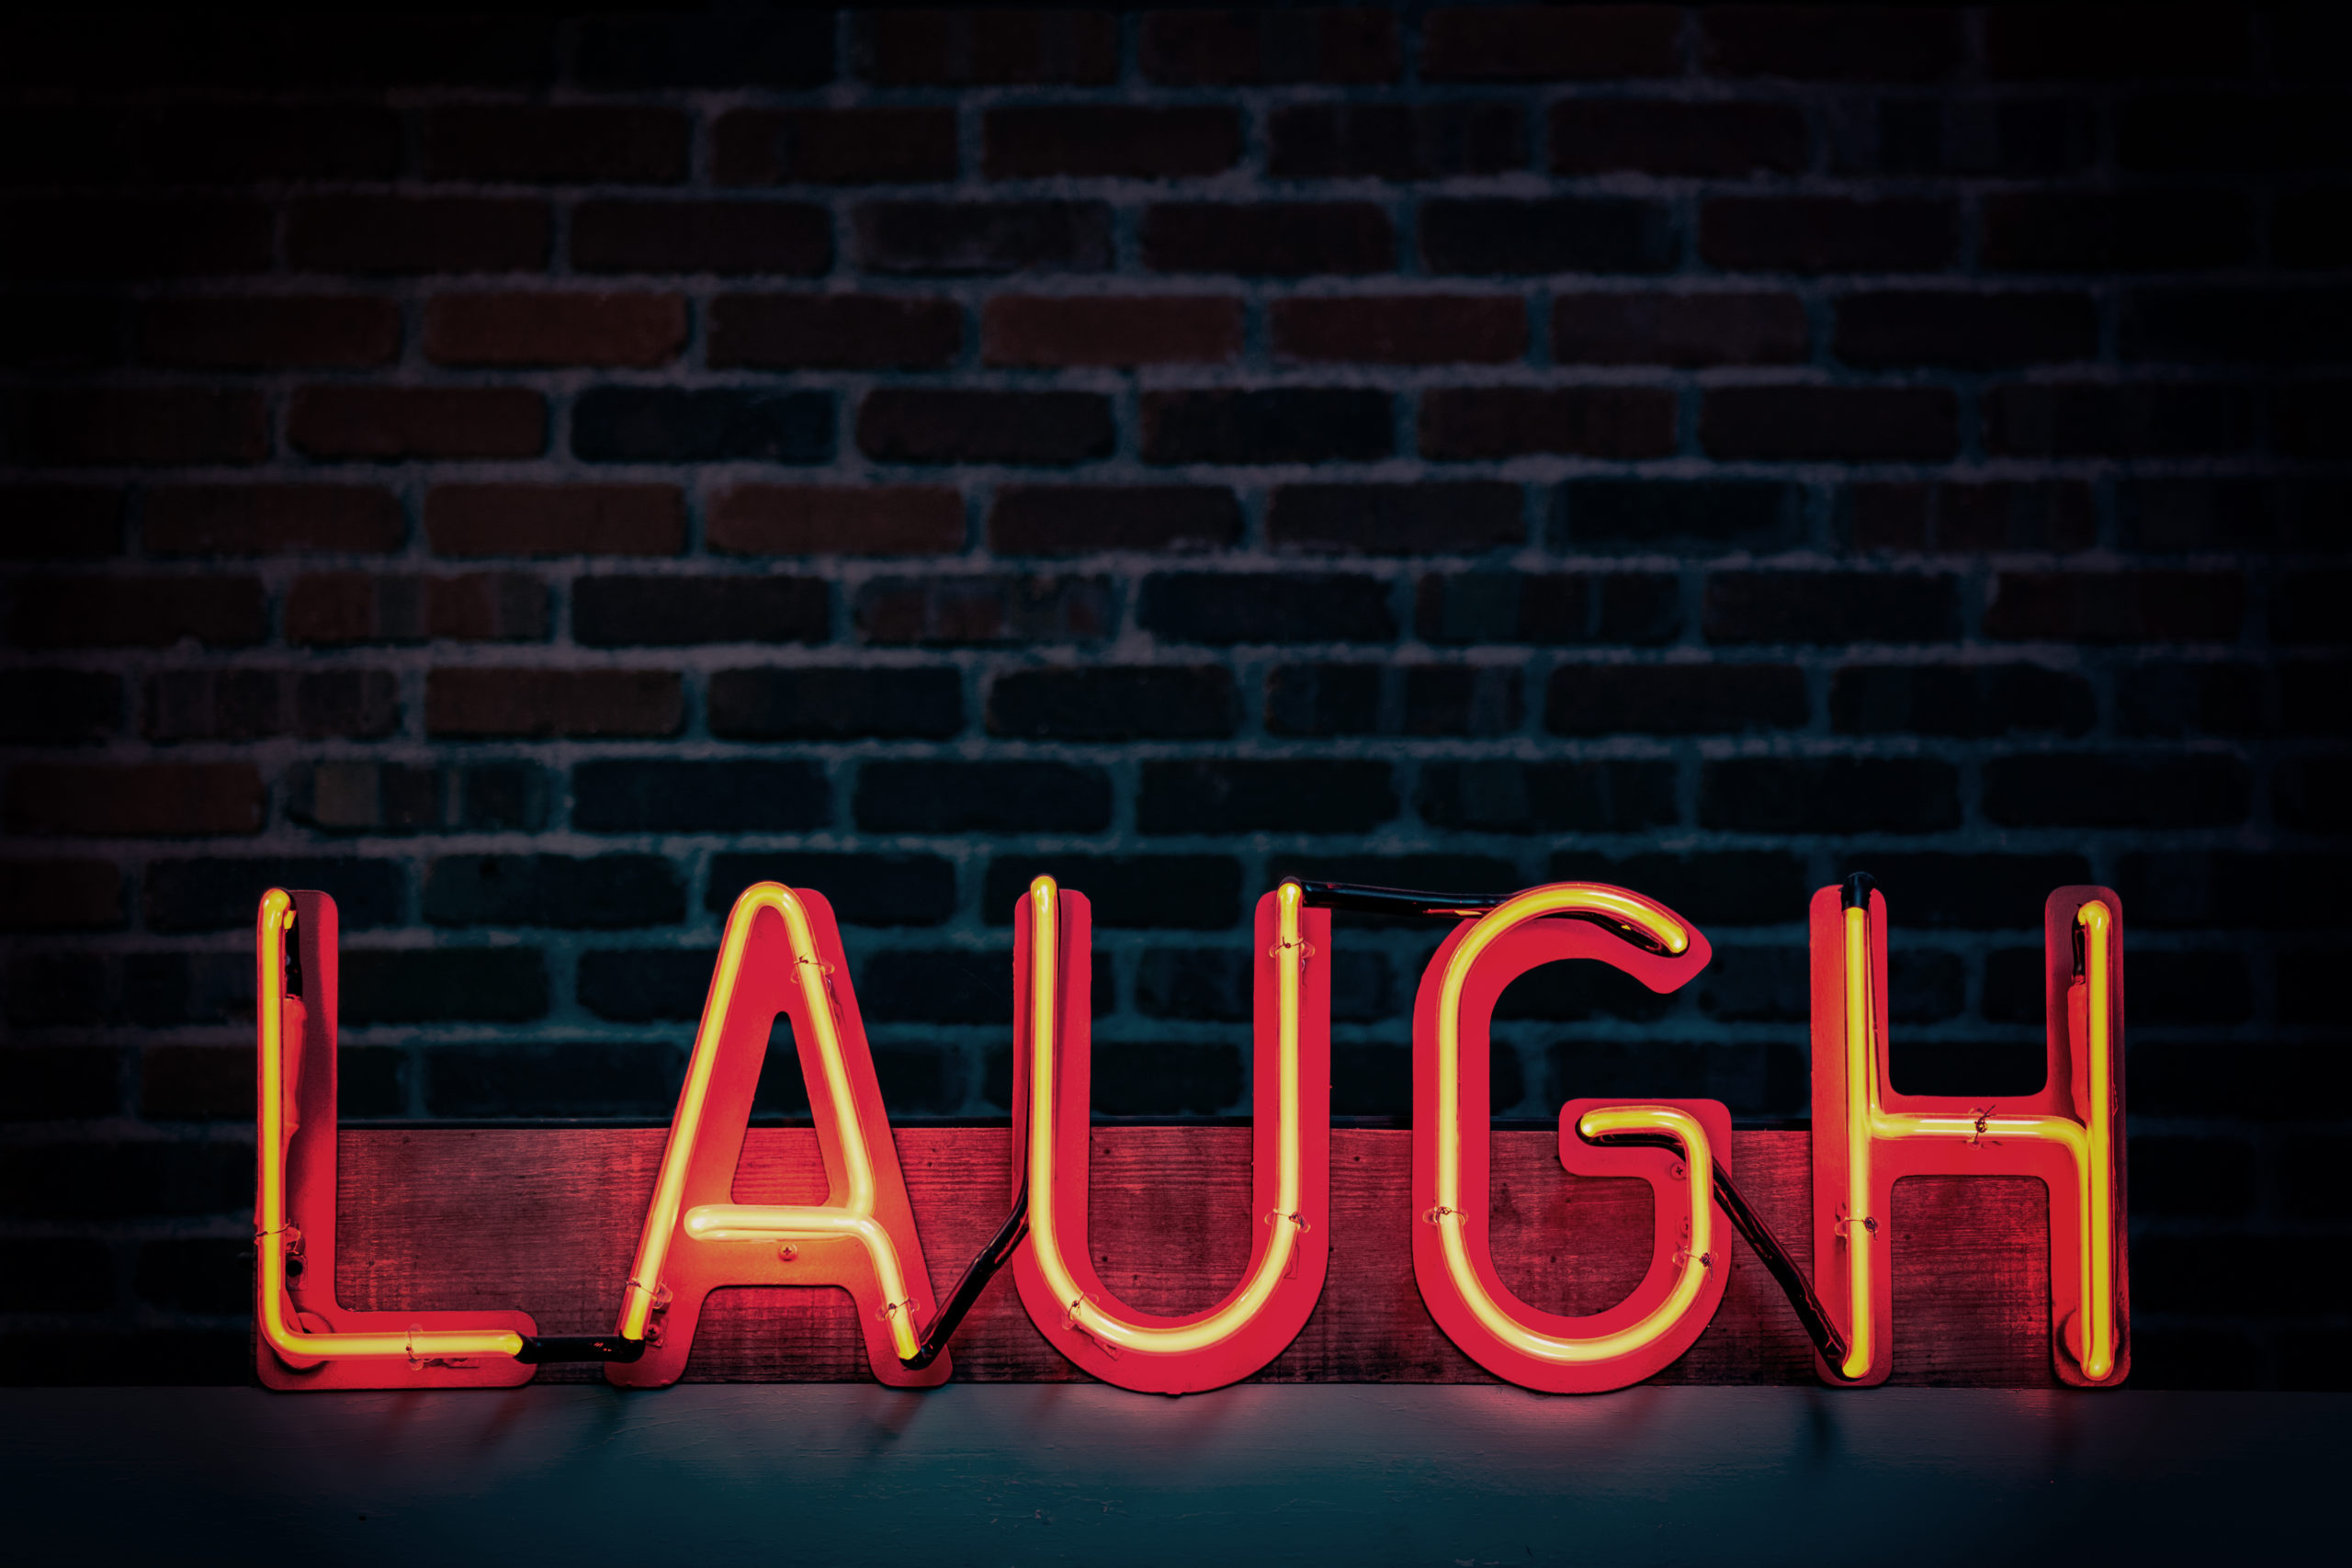 Neon sign that says laugh